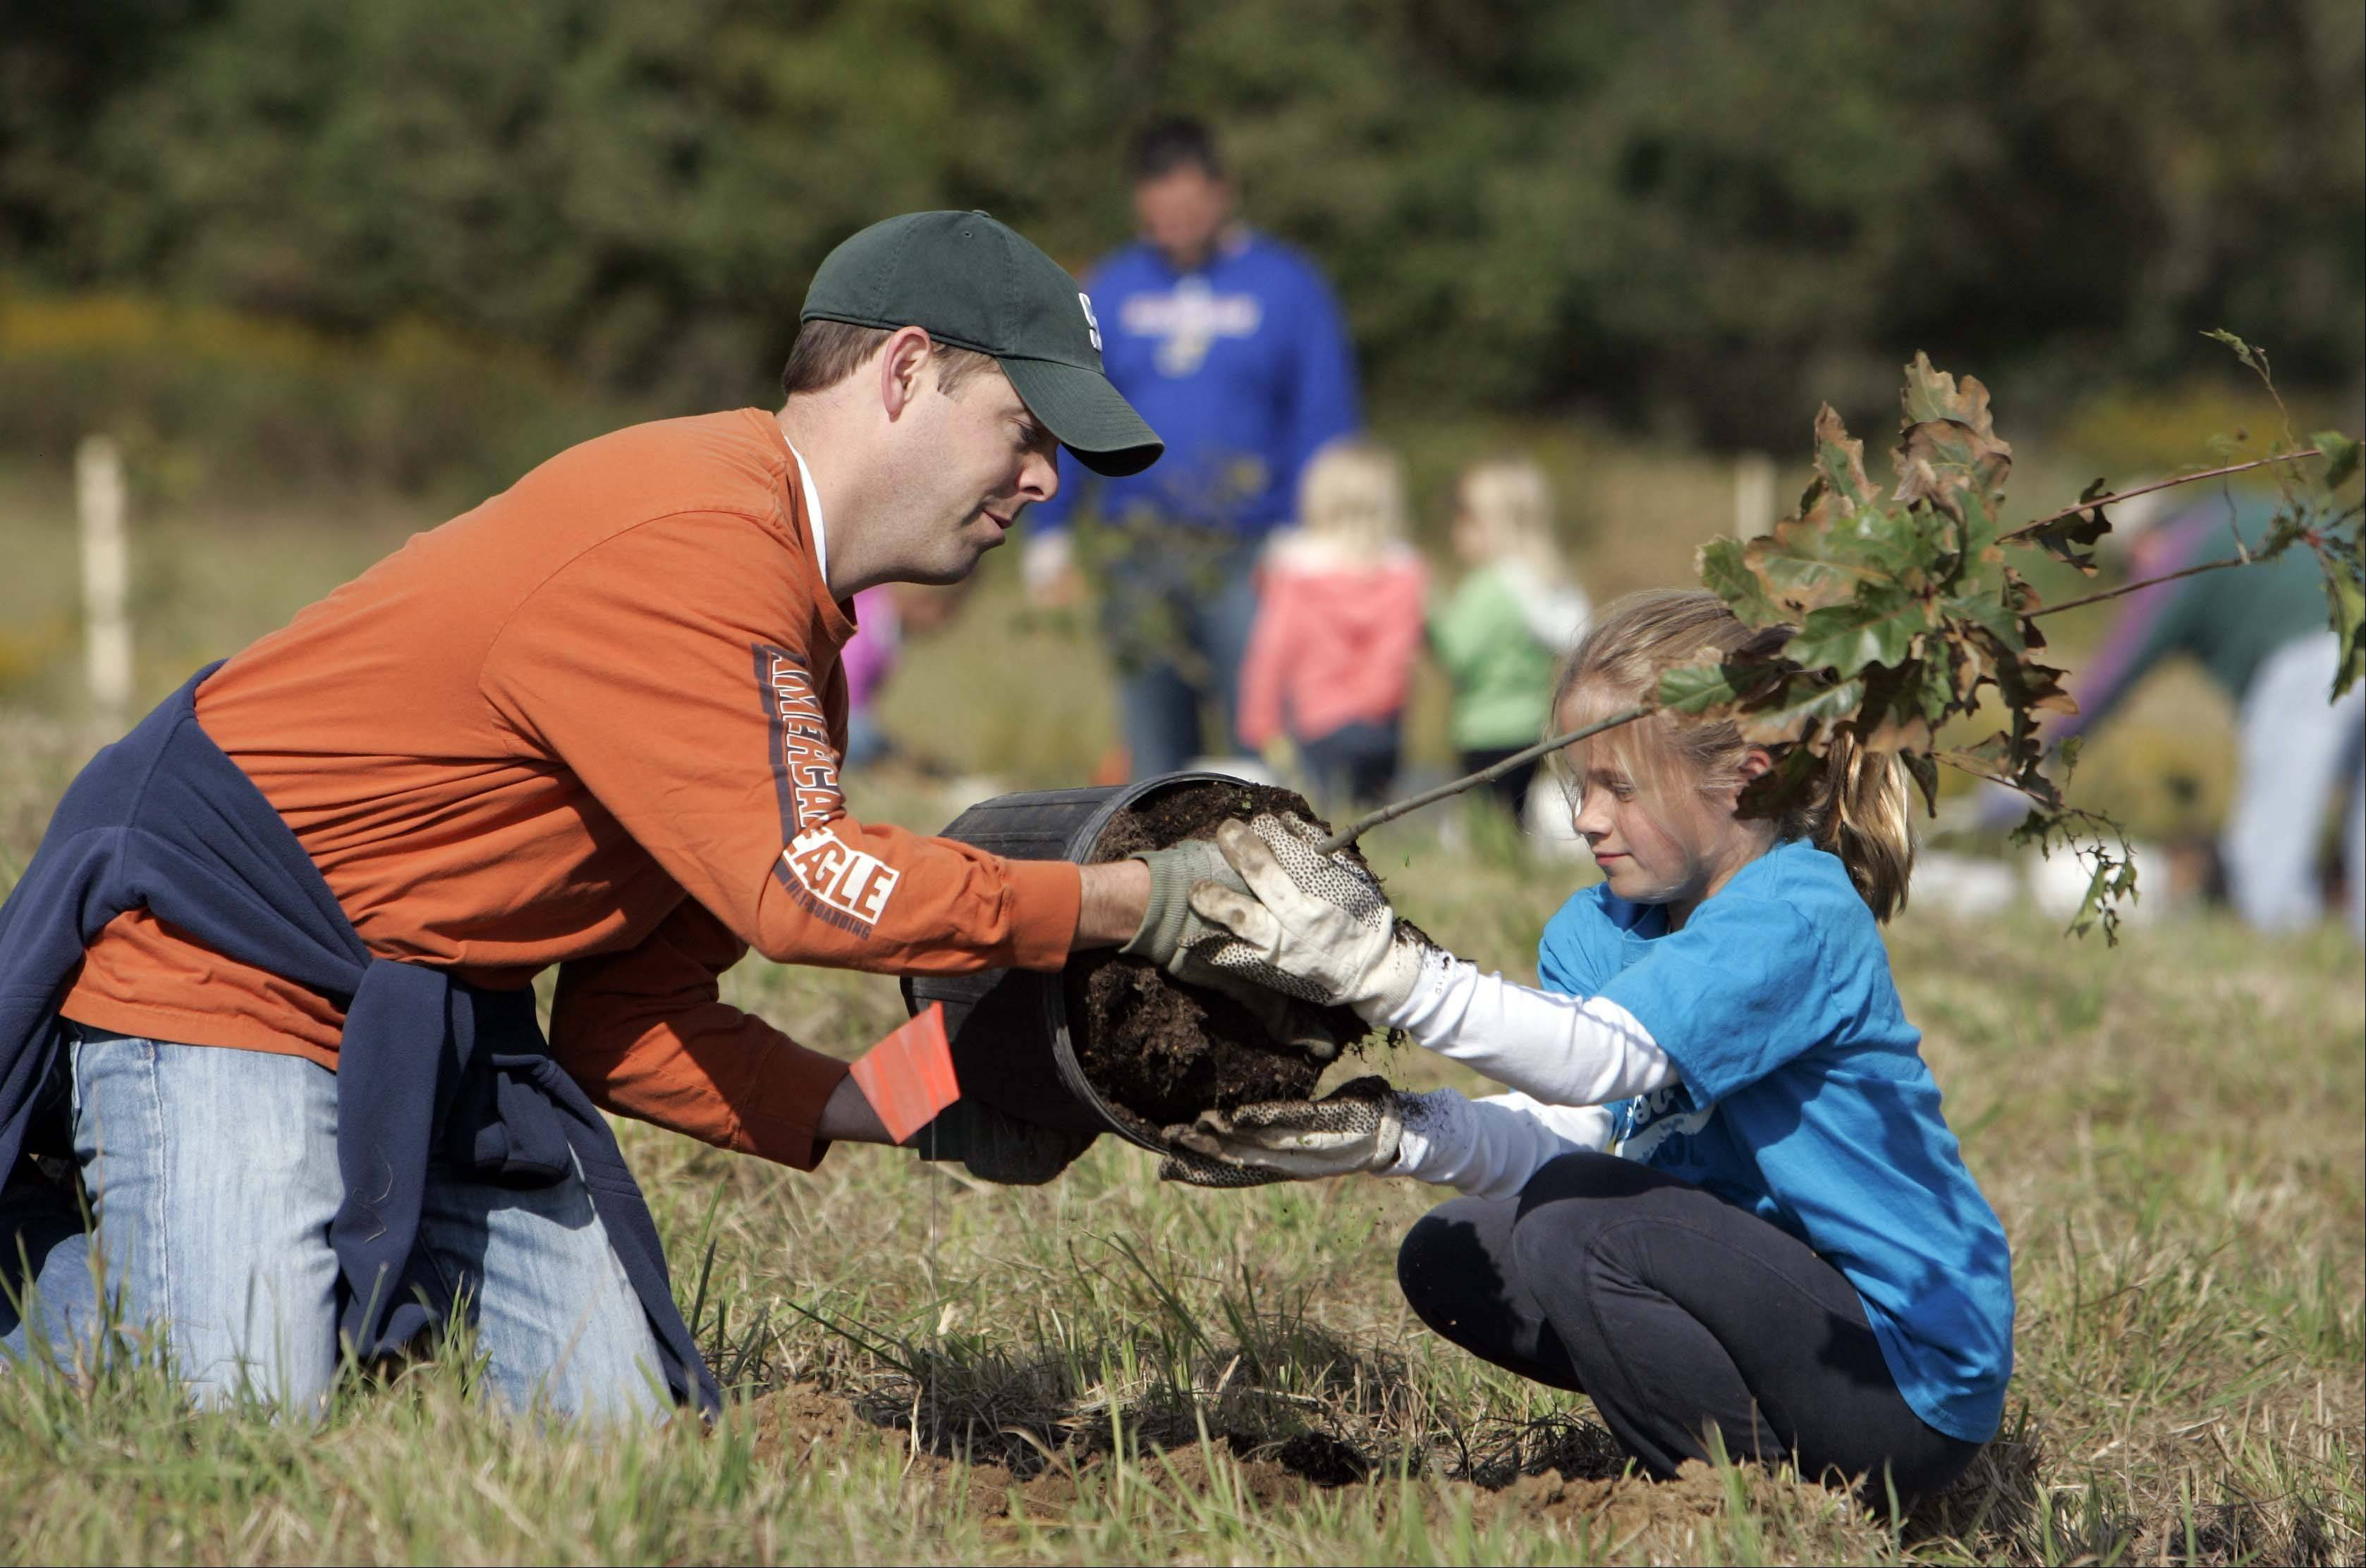 Derek, left, and Delaney Garden of Carpentersville help to plant an oak sapling at Schweitzer Woods Forest Preserve in West Dundee last year. Another tree planting day is slated for Saturday, April 21, in honor of Earth Day.